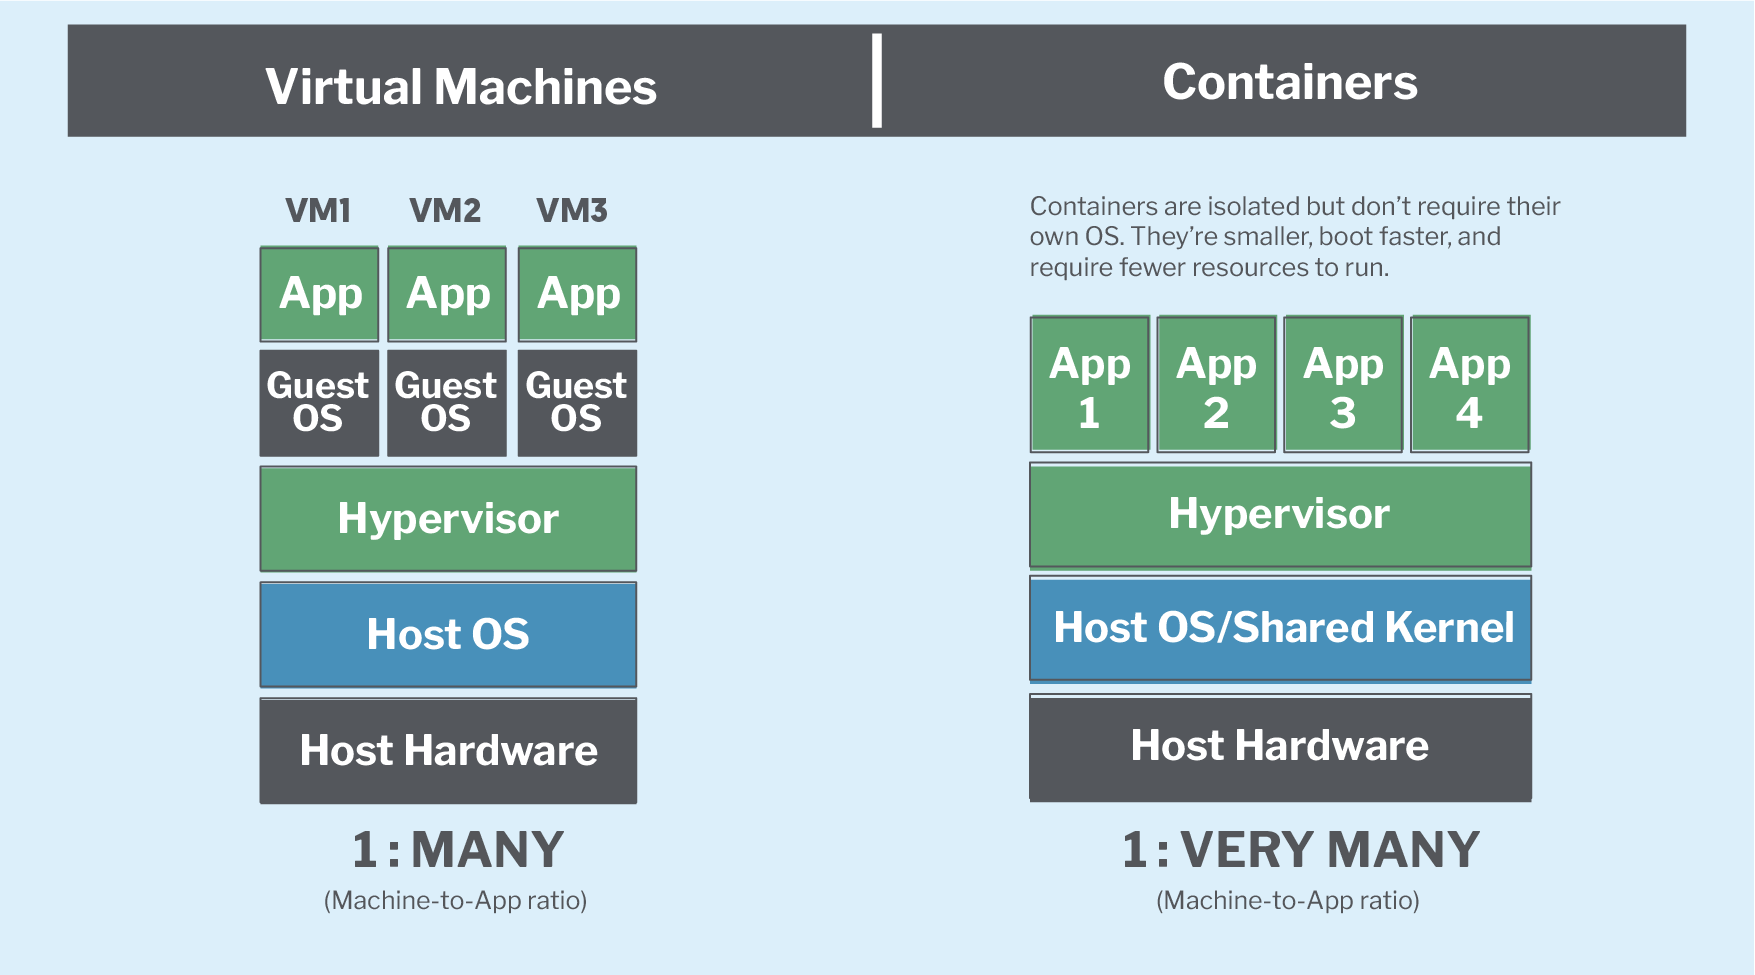 Graphic comparing the differences between virtual machines and containers.